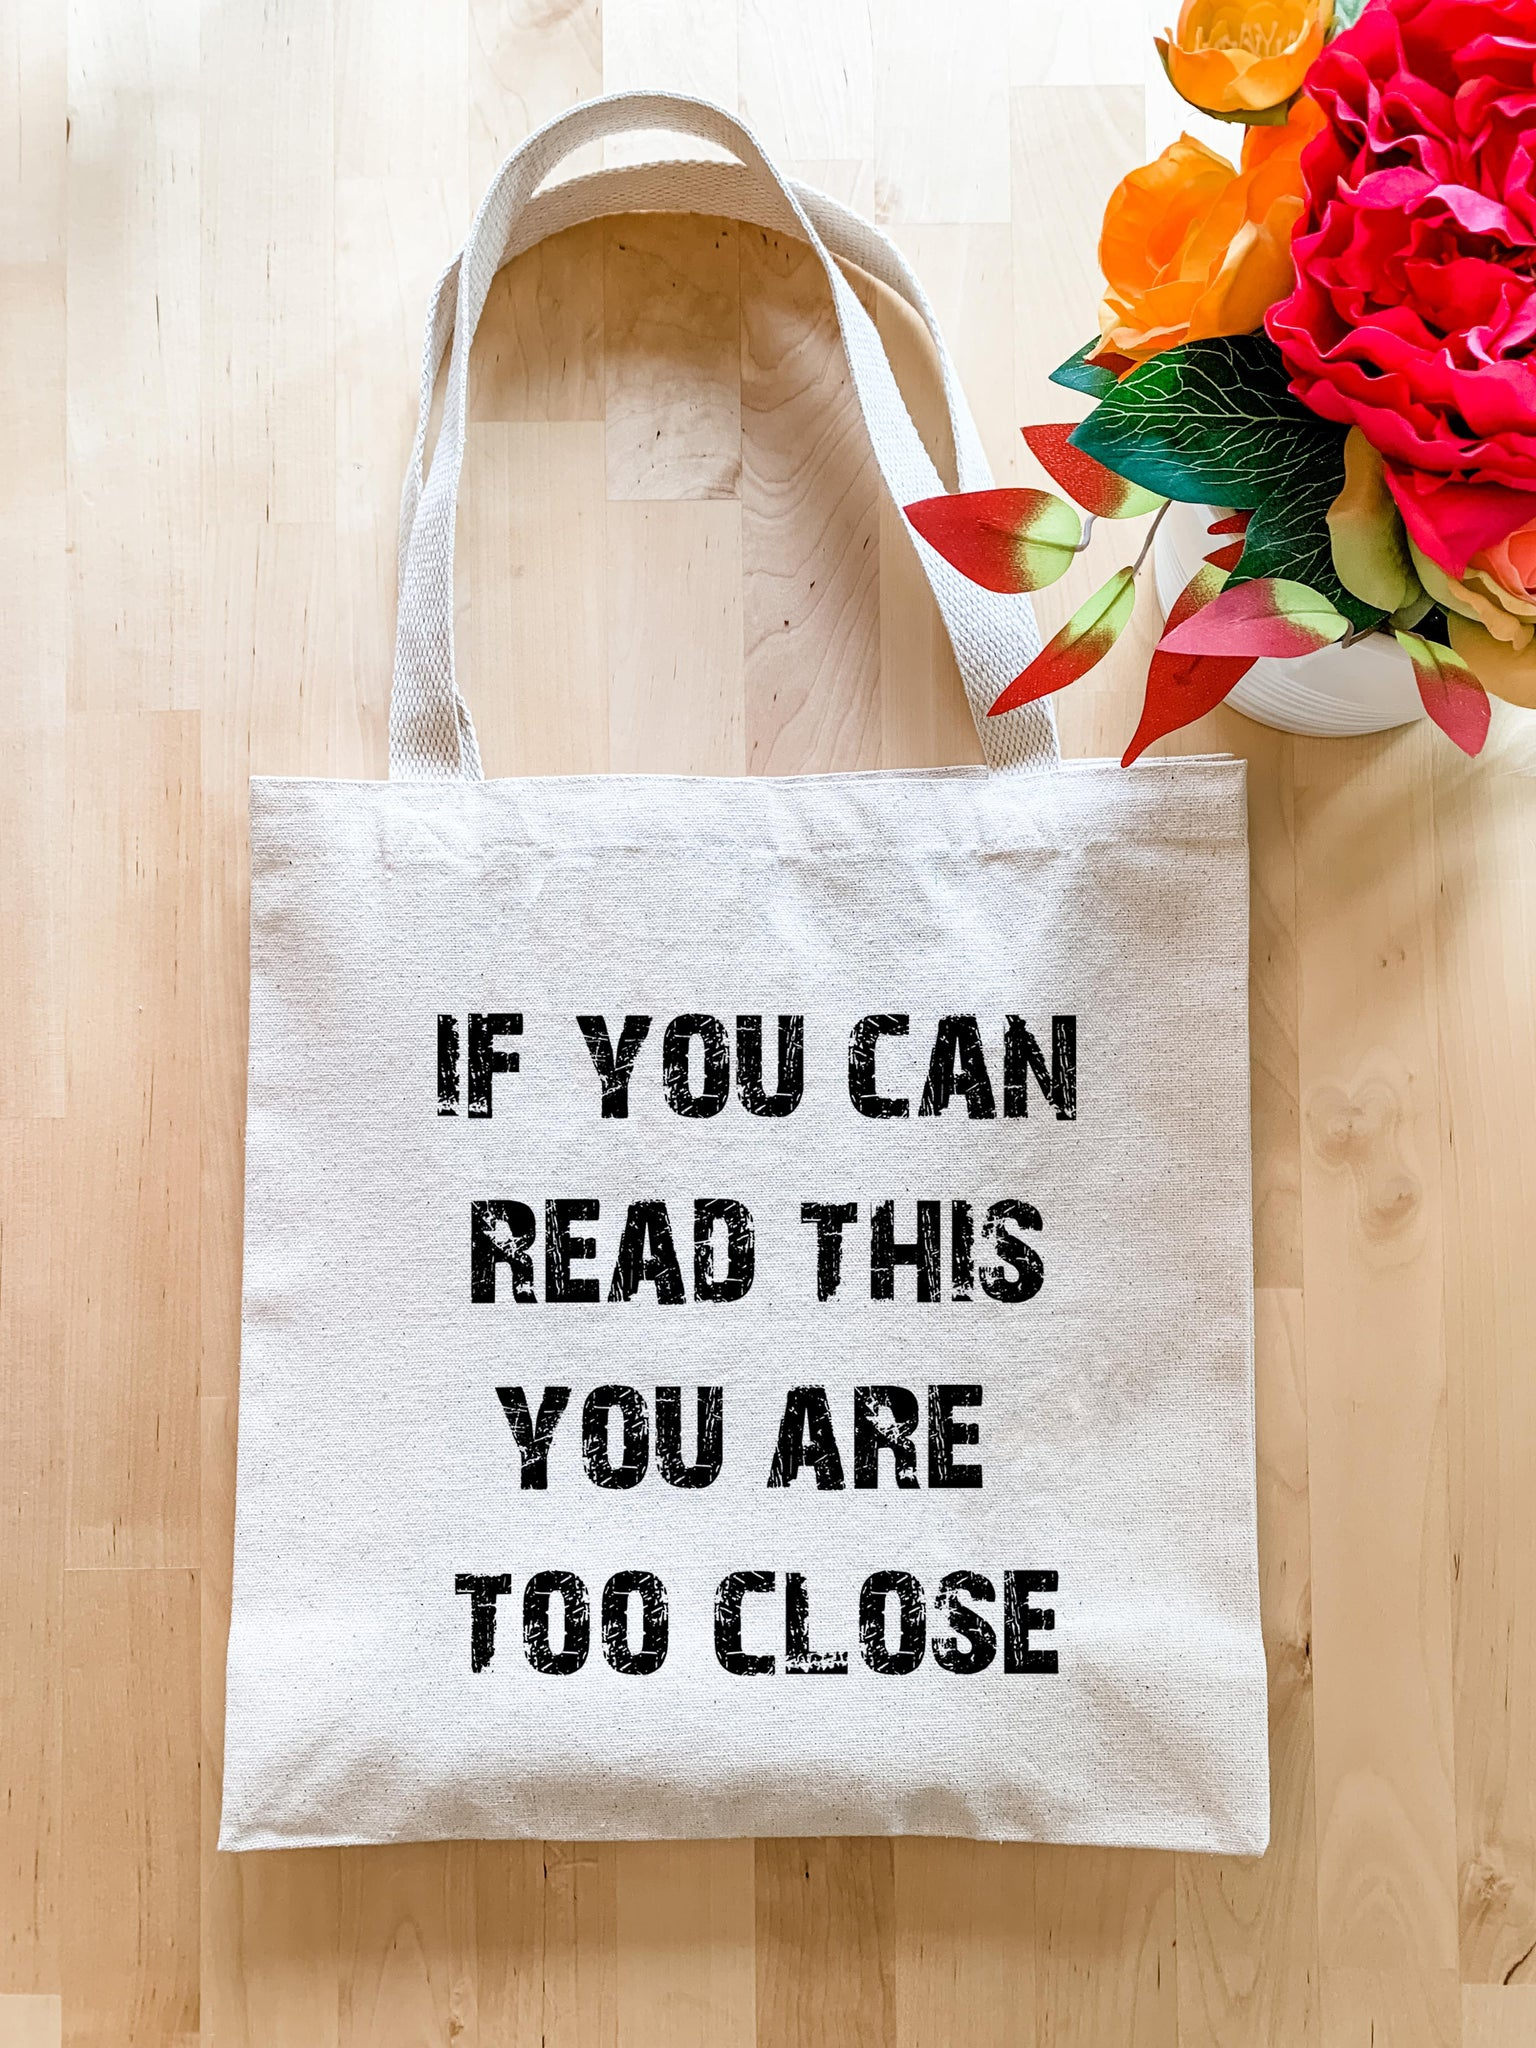 If You Can Read This You Are Too Close (Social Distancing) - Tote Bag - MoonlightMakers